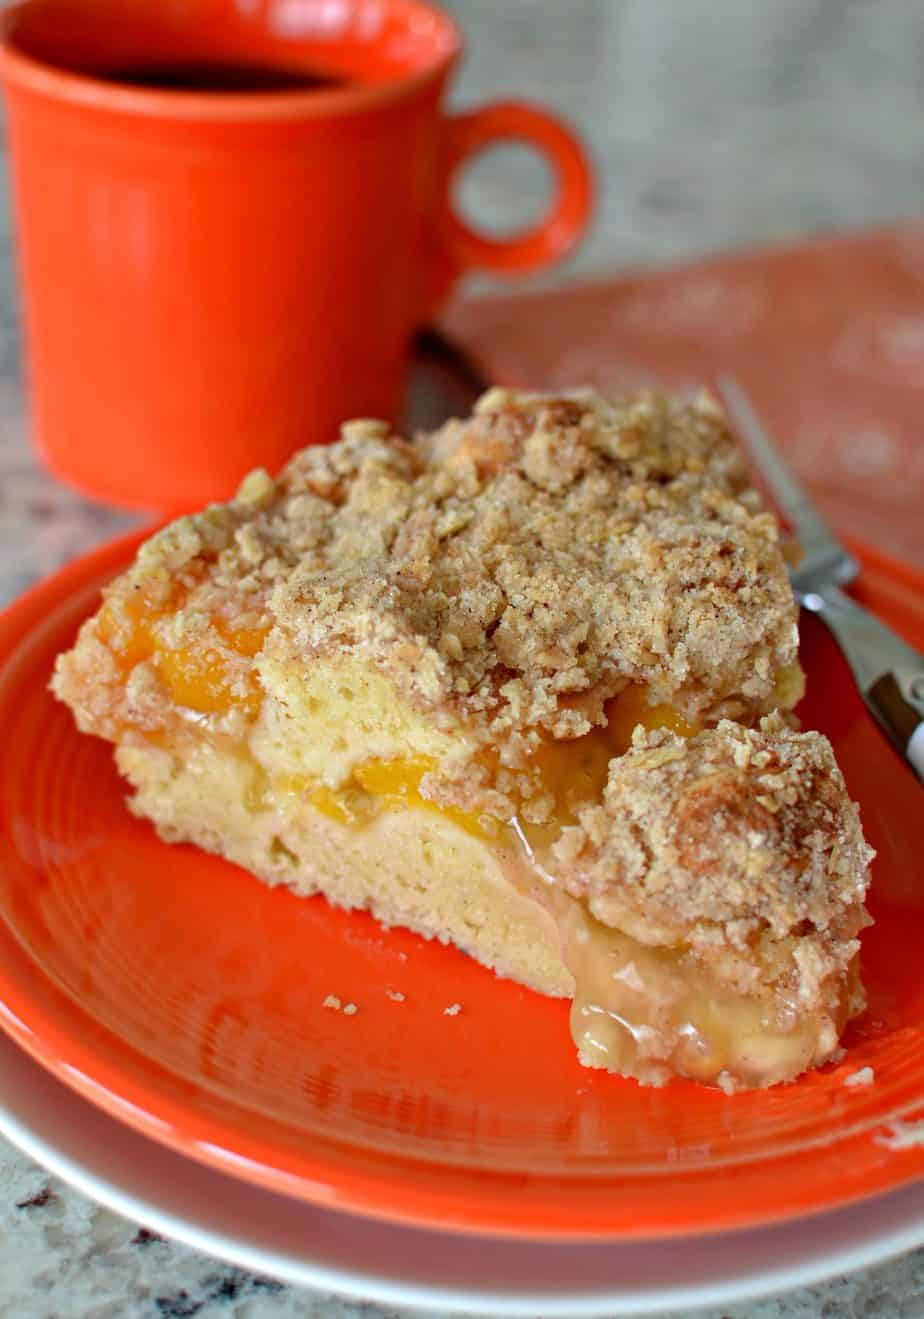 This Peach Coffee Cake has a sour cream cake base, peach center and crunchy crumb oatmeal topping.